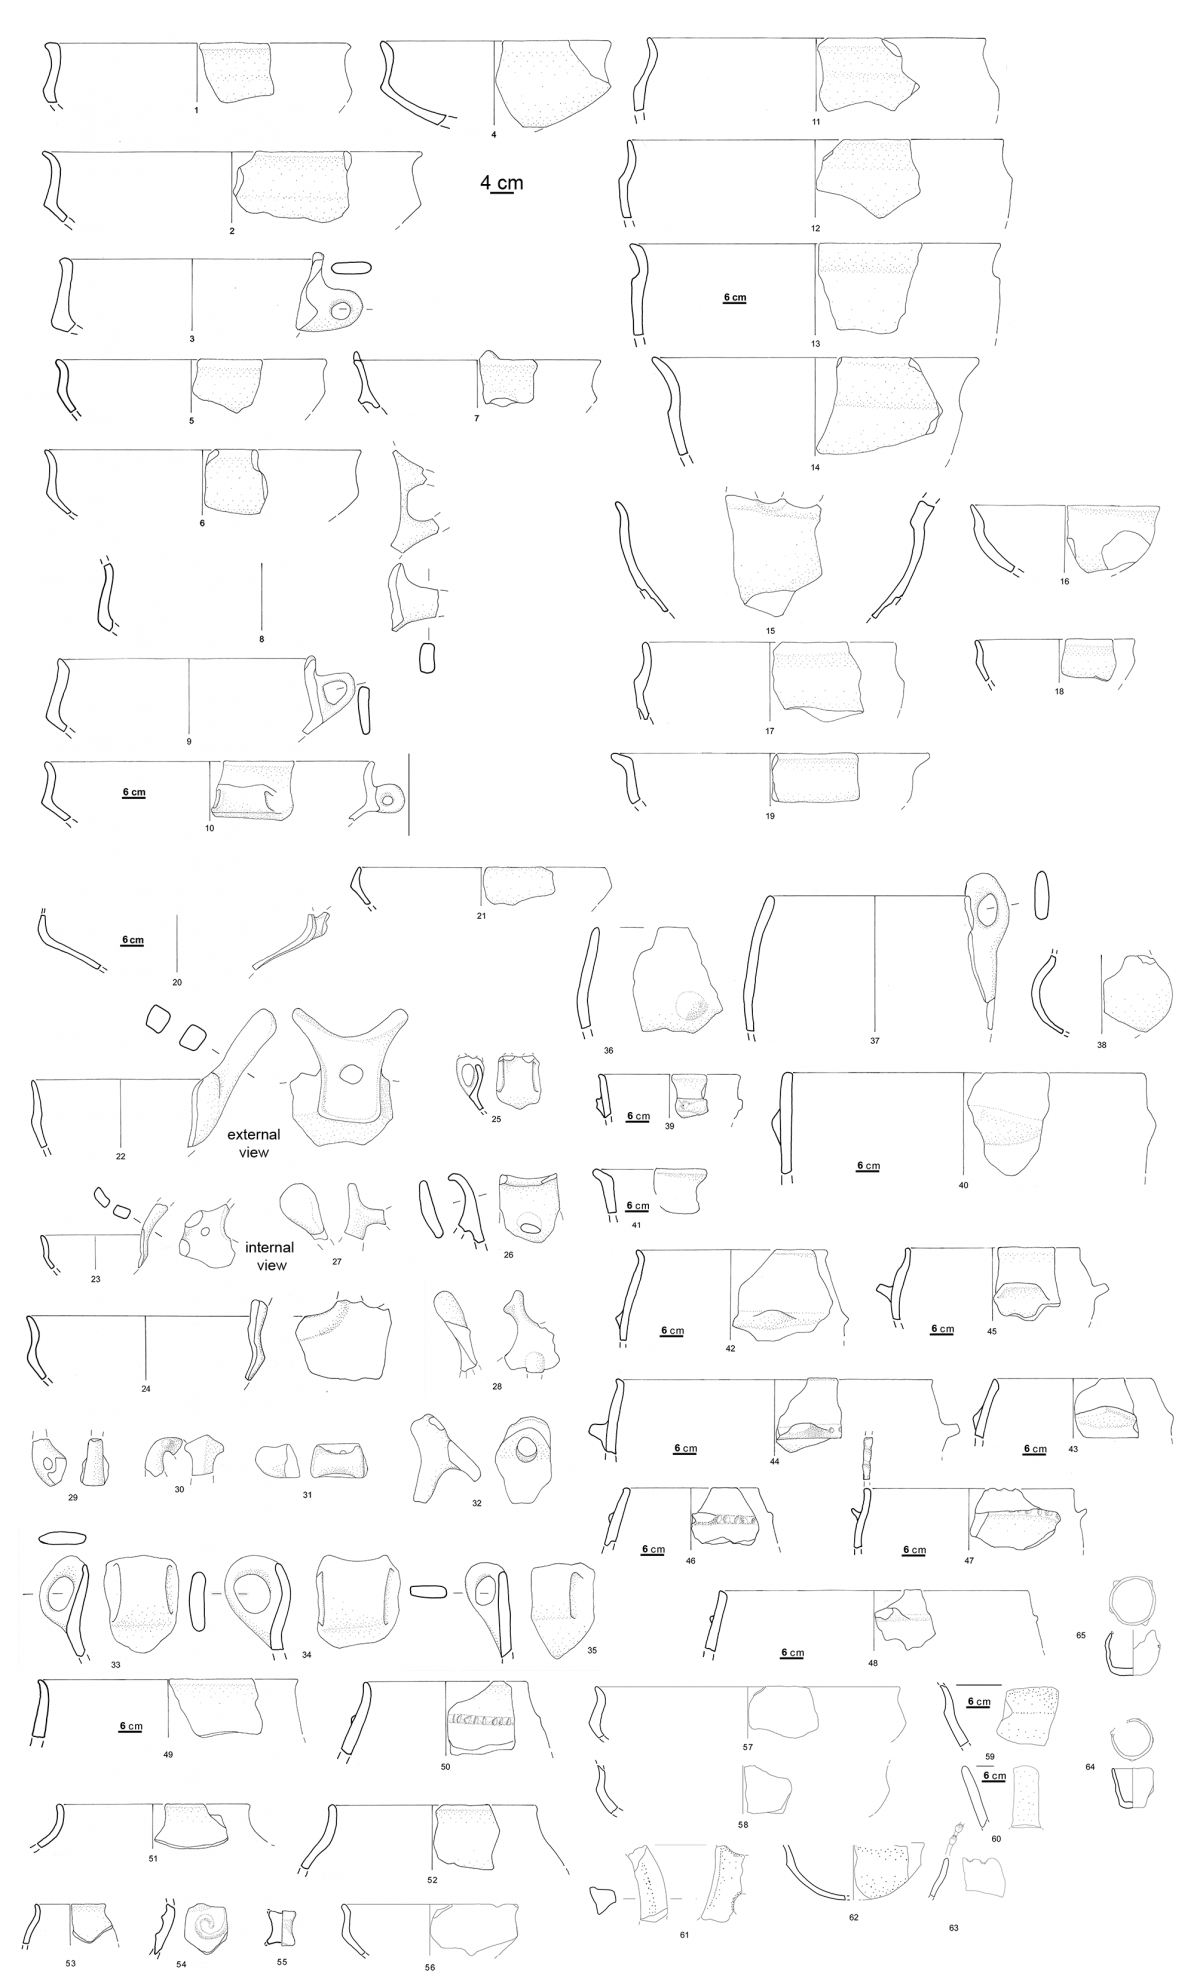 Caprolace, potsherds collected by Liboni and Alessandri around the two islands in the Caprolace lake (after Alessandri 2007)